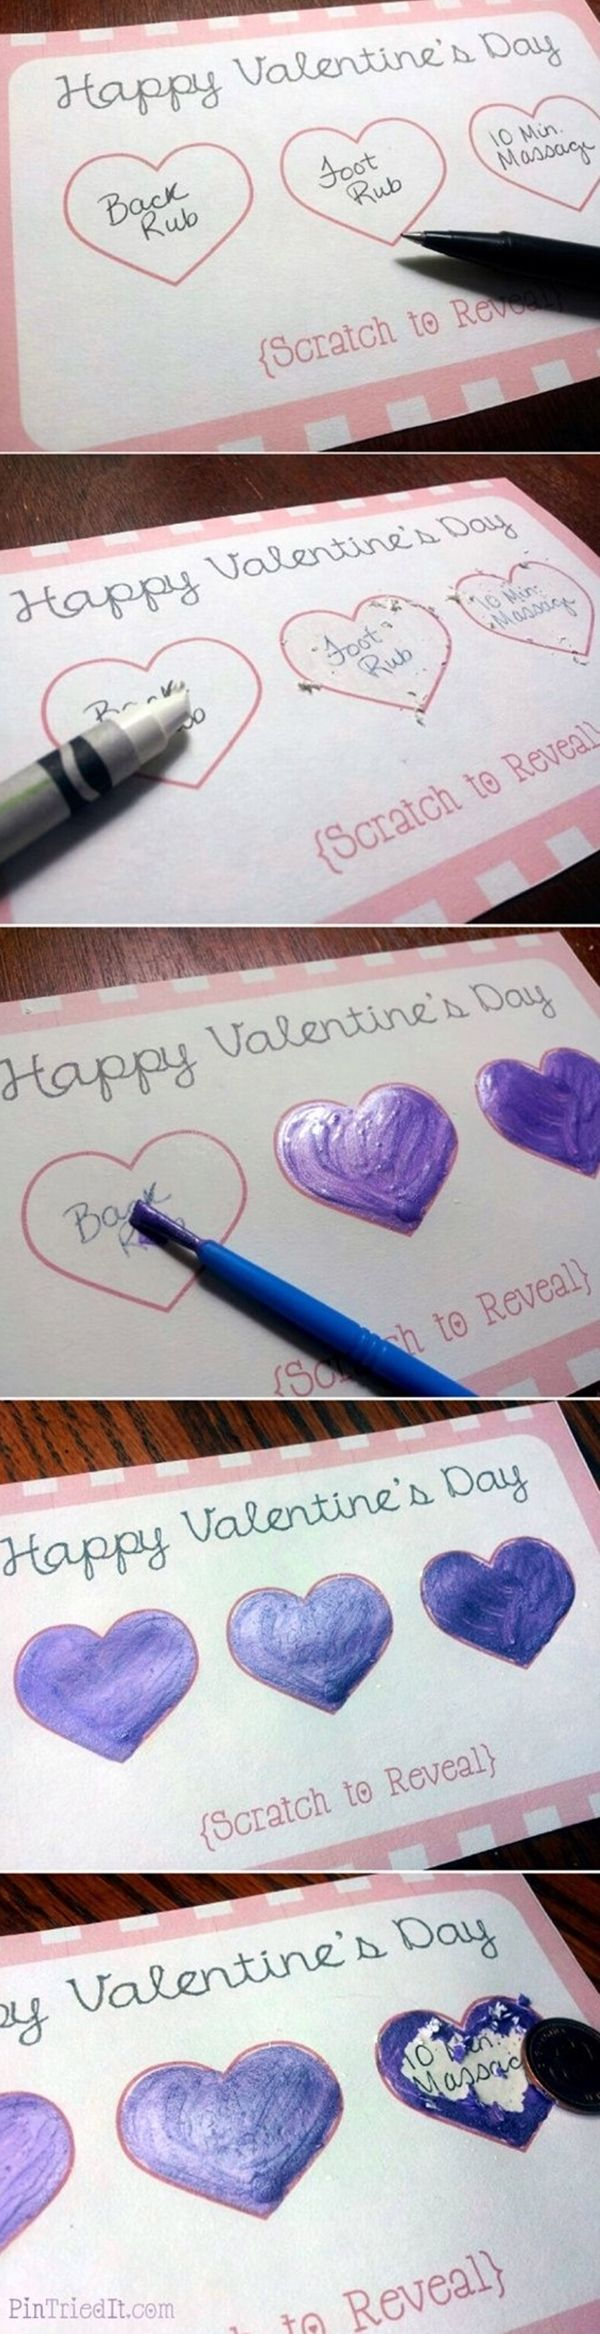 Now here is a Homemade Valentines Day Ideas for Him that could ...